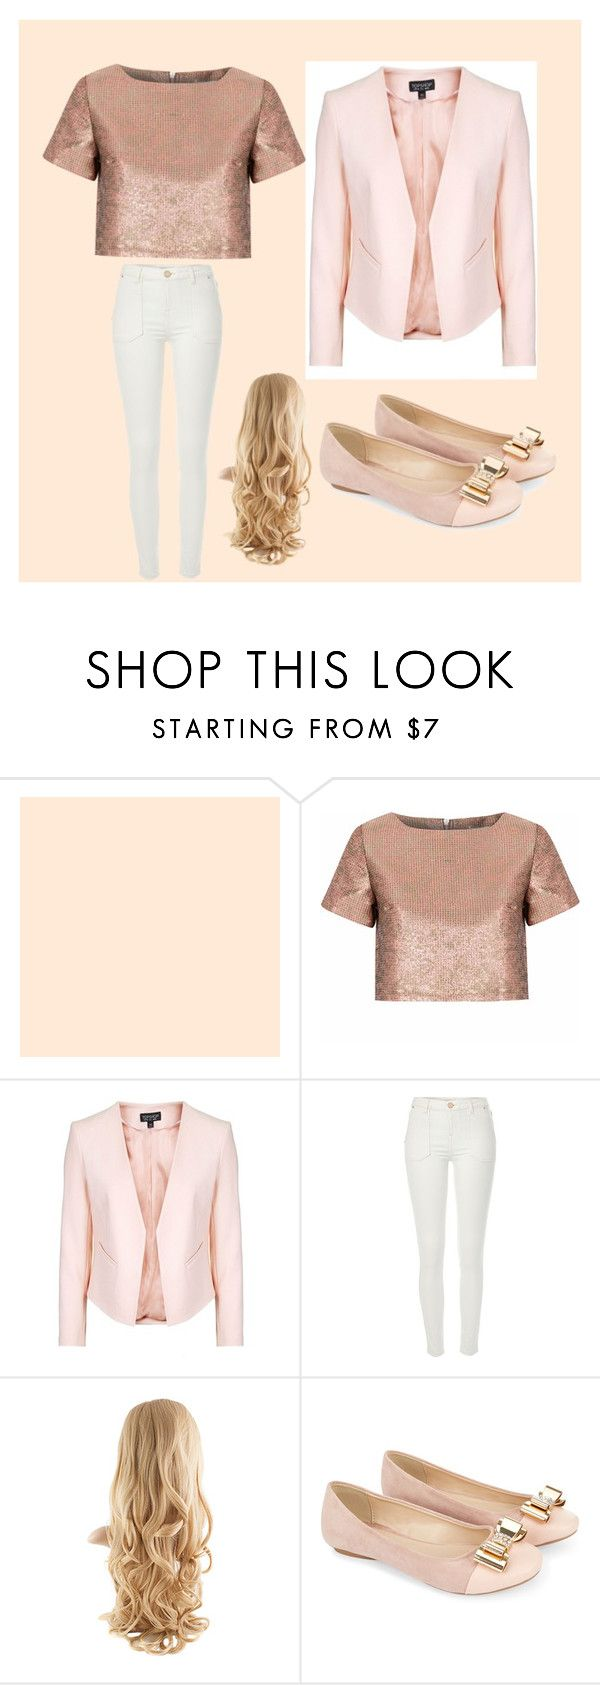 """""""Untitled #42"""" by zebramissy ❤ liked on Polyvore featuring Glamorous, Topshop, River Island and Monsoon"""